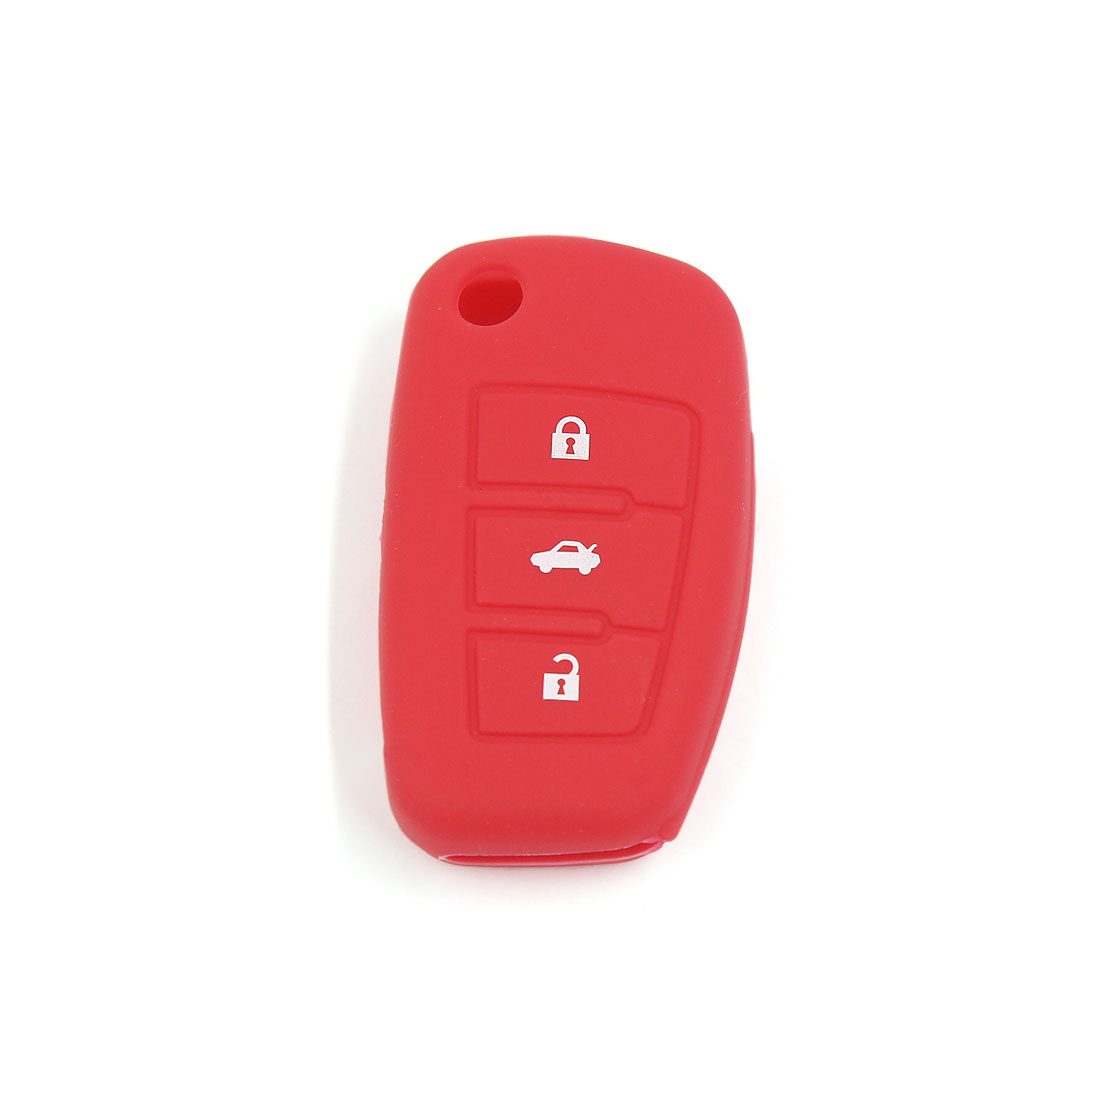 Red Silicone Car Remote Fob Key Cover 3 Button for Audi A6L Q7 TT R8 A3 A4L 2009